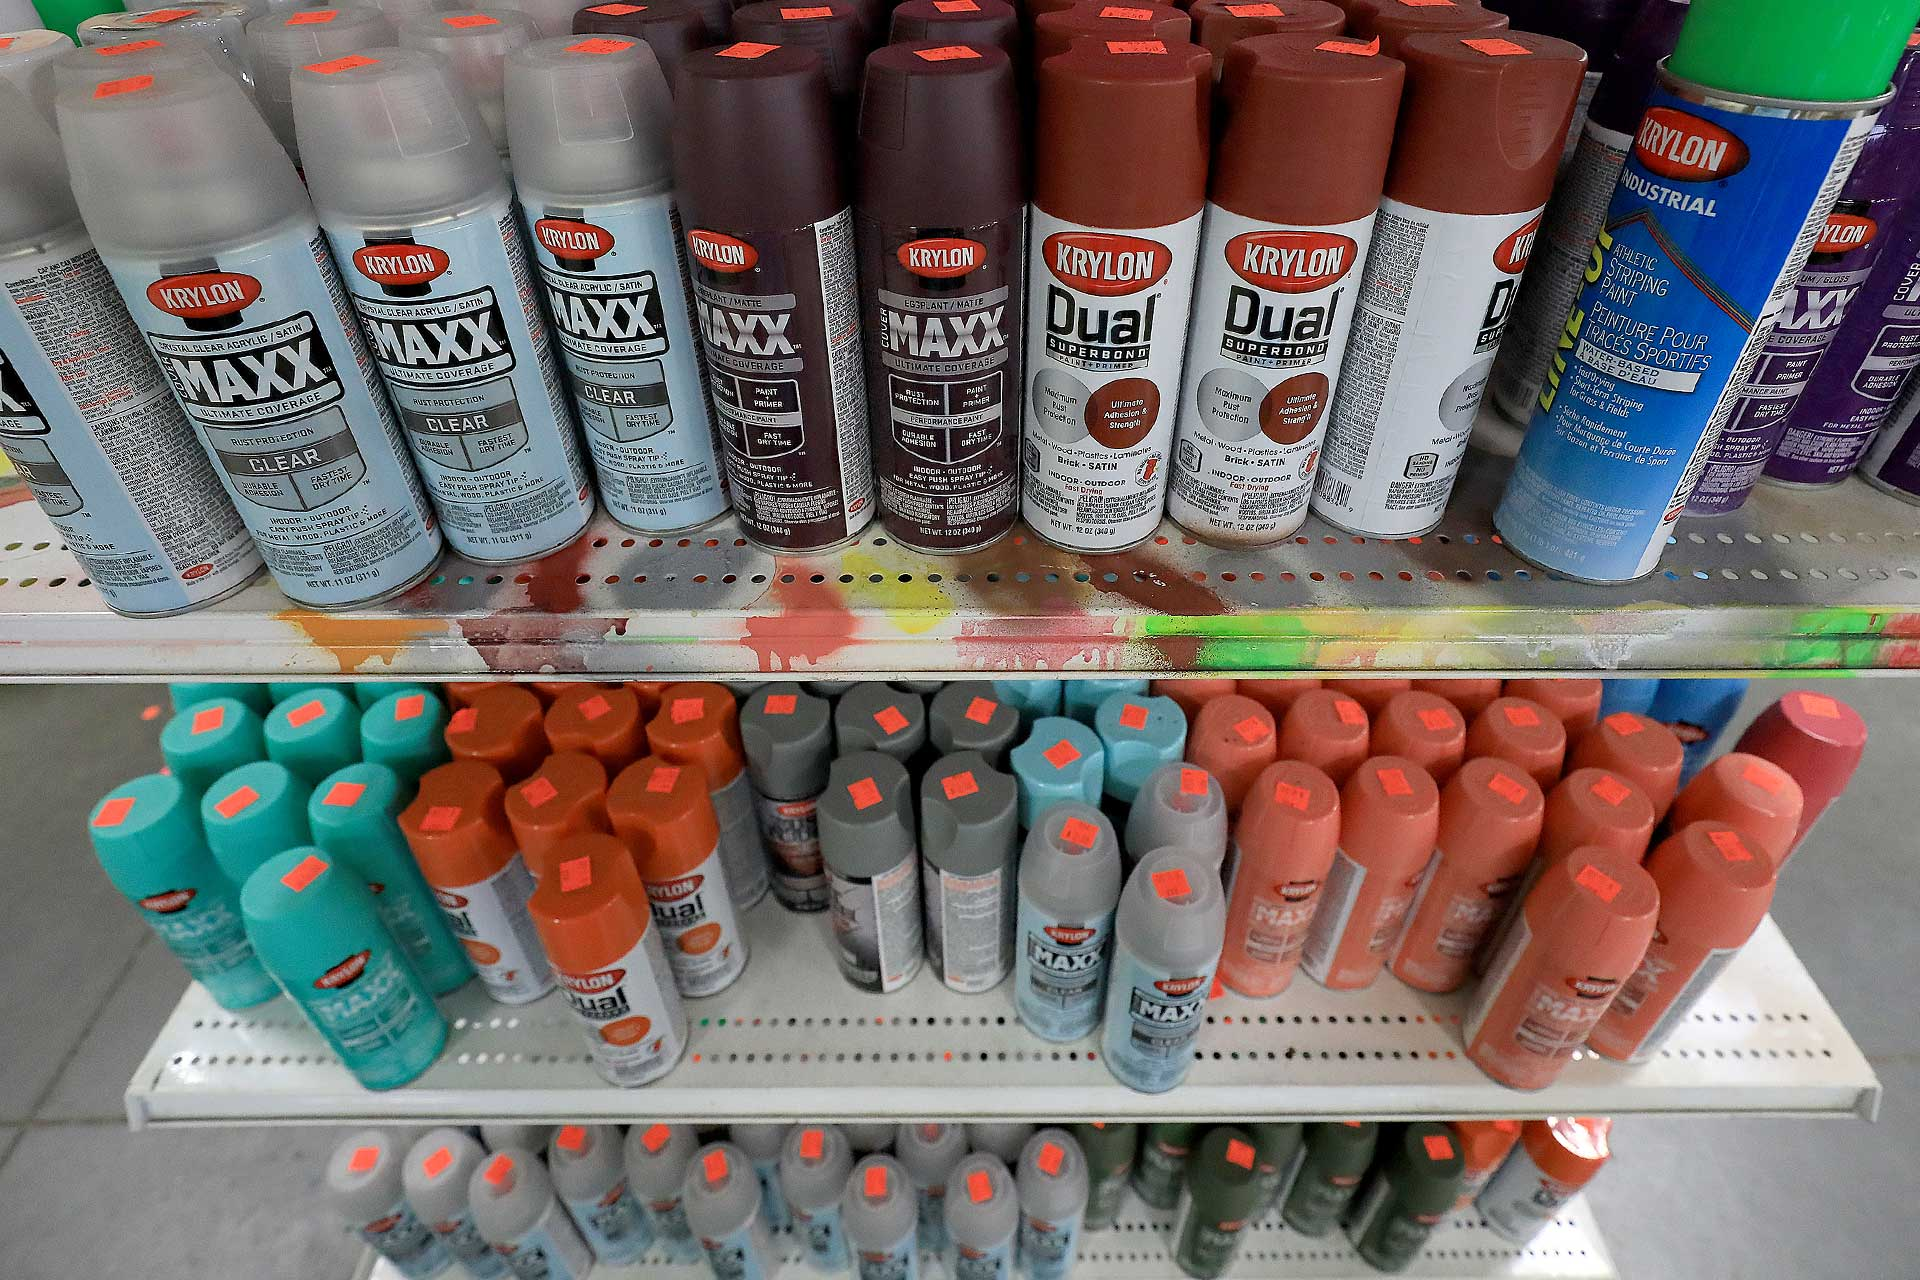 Assorted spray paint cans on sale at the Newport News ReStore